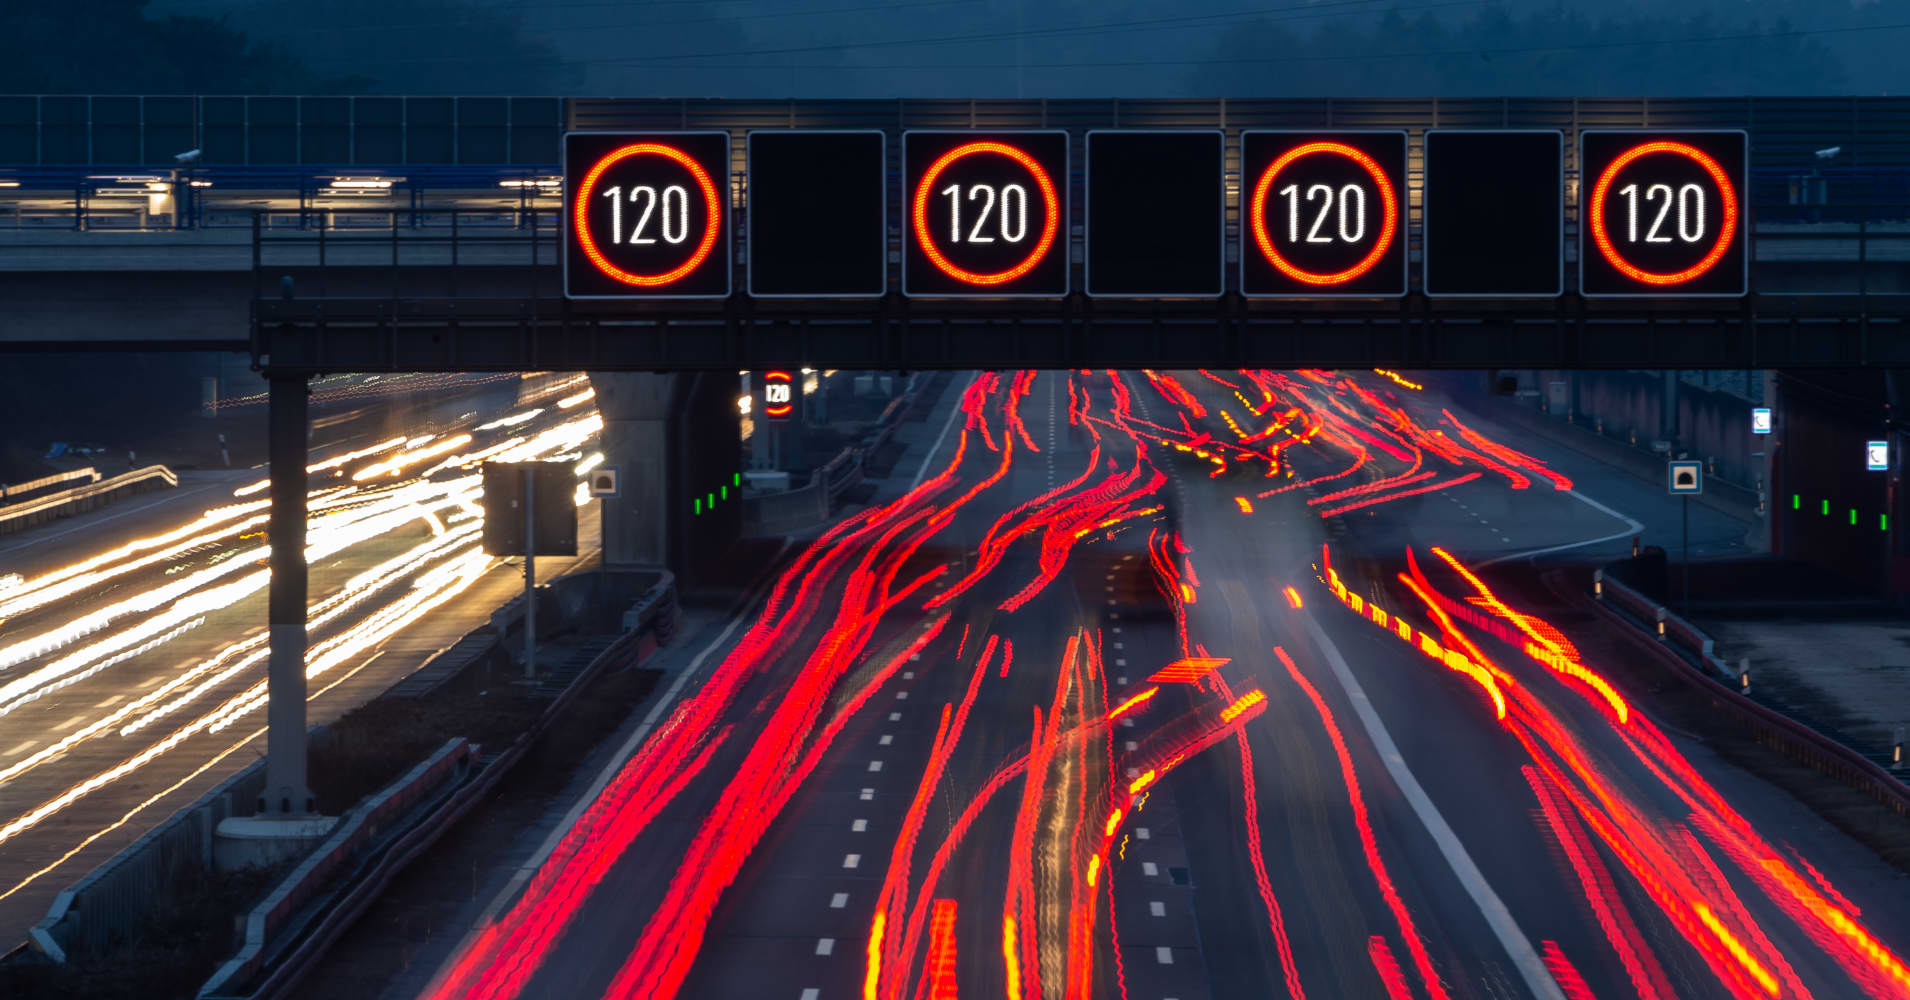 Cars in Europe could soon be fitted with technology to stop drivers speeding